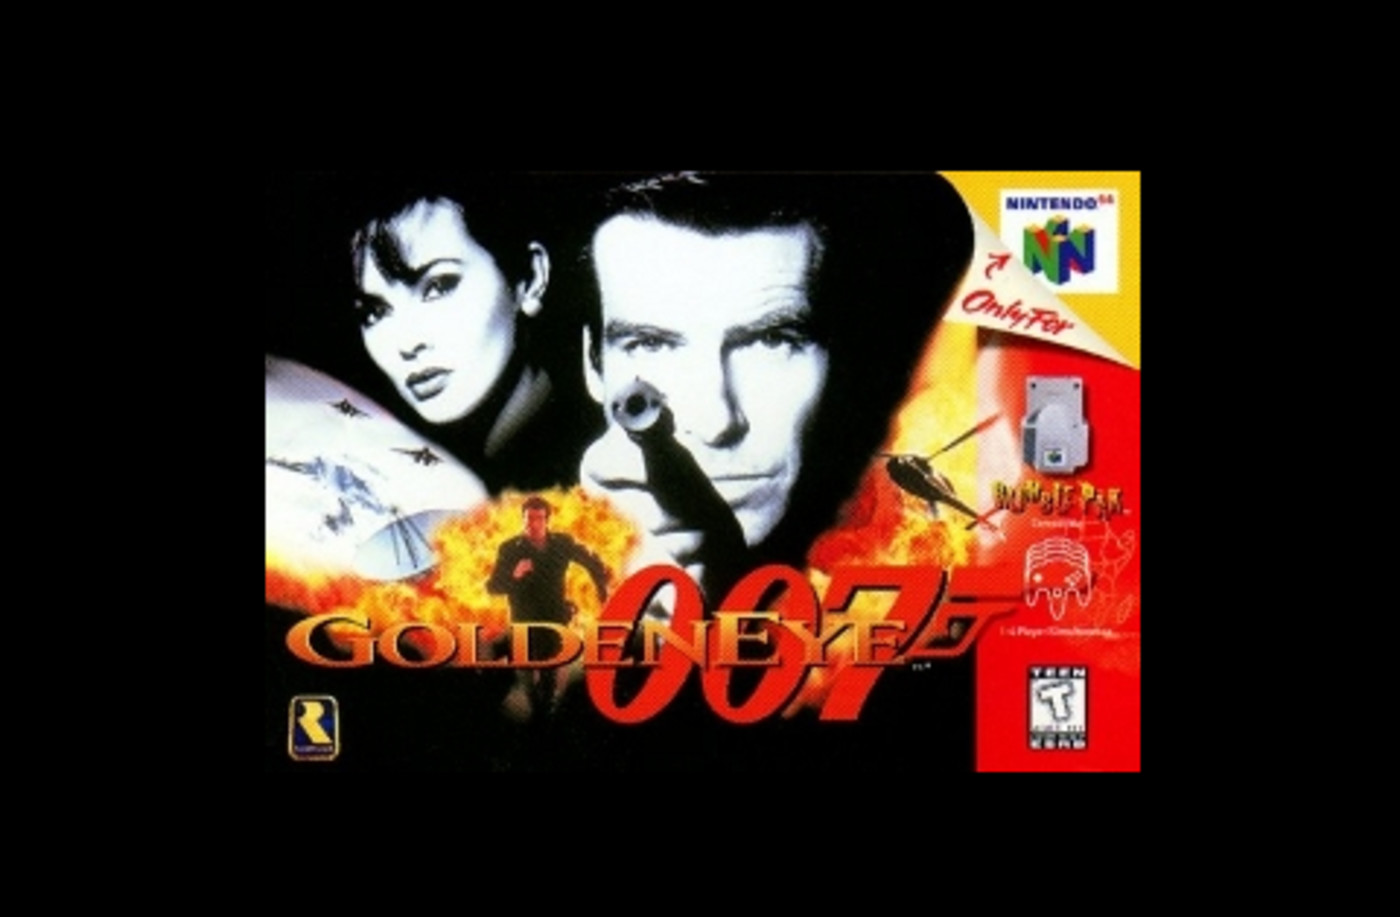 first-person-shooter-game-golden-eye-007